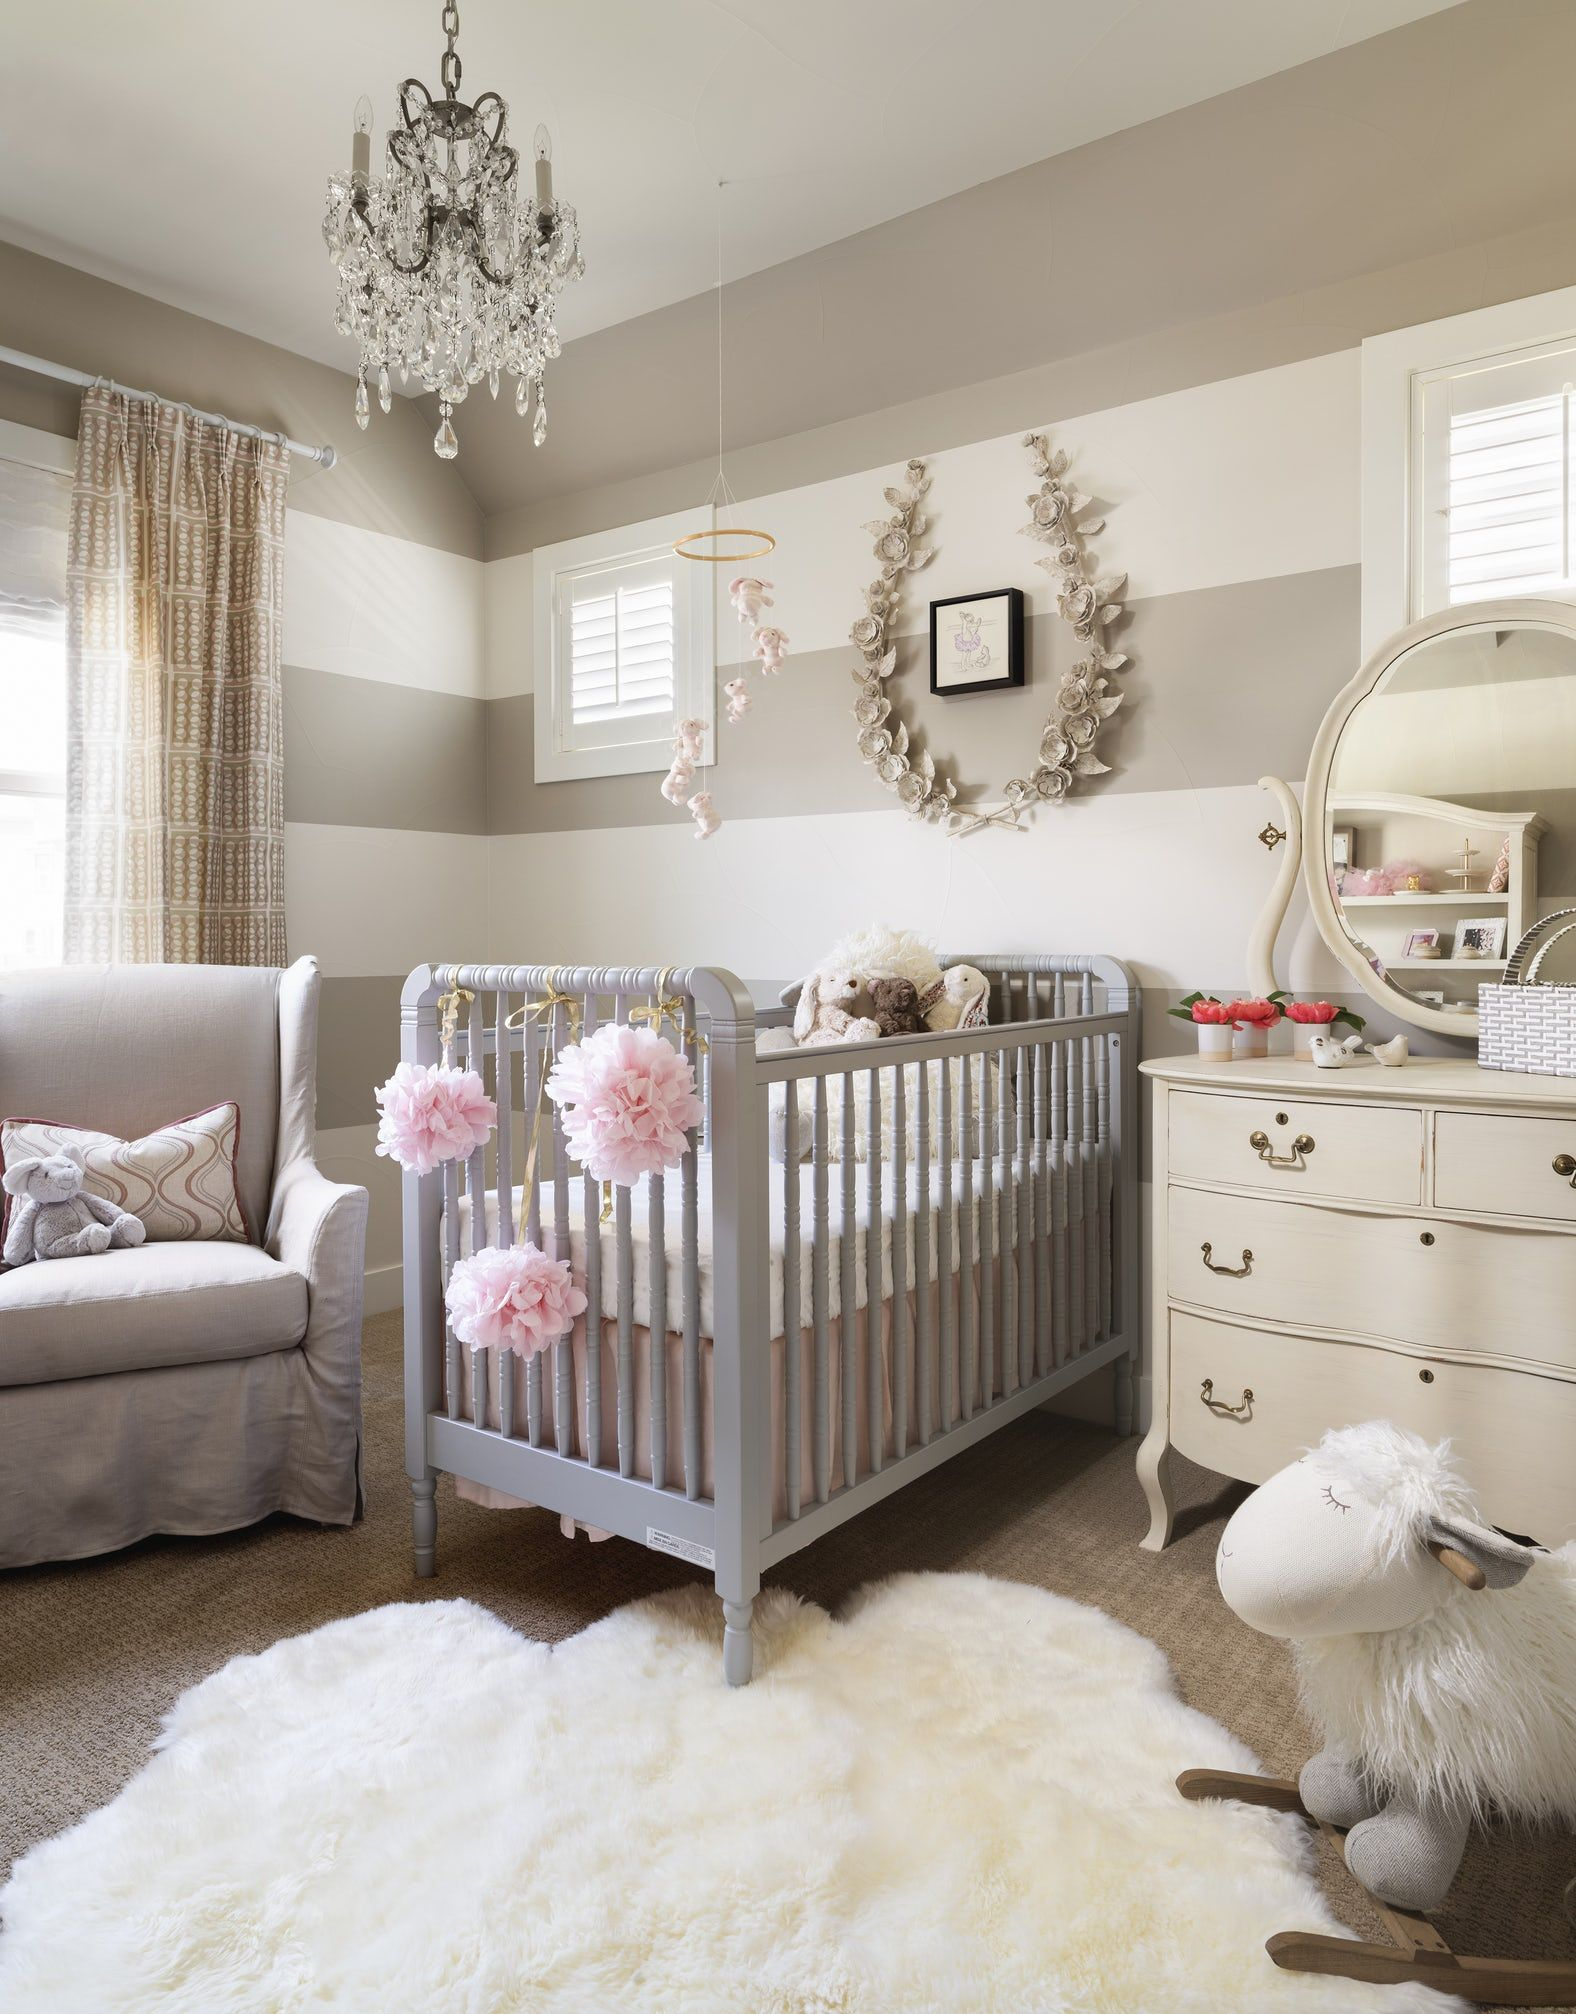 chic baby room design ideas how to decorate a nursery rh elledecor com baby room designs boy baby room design online